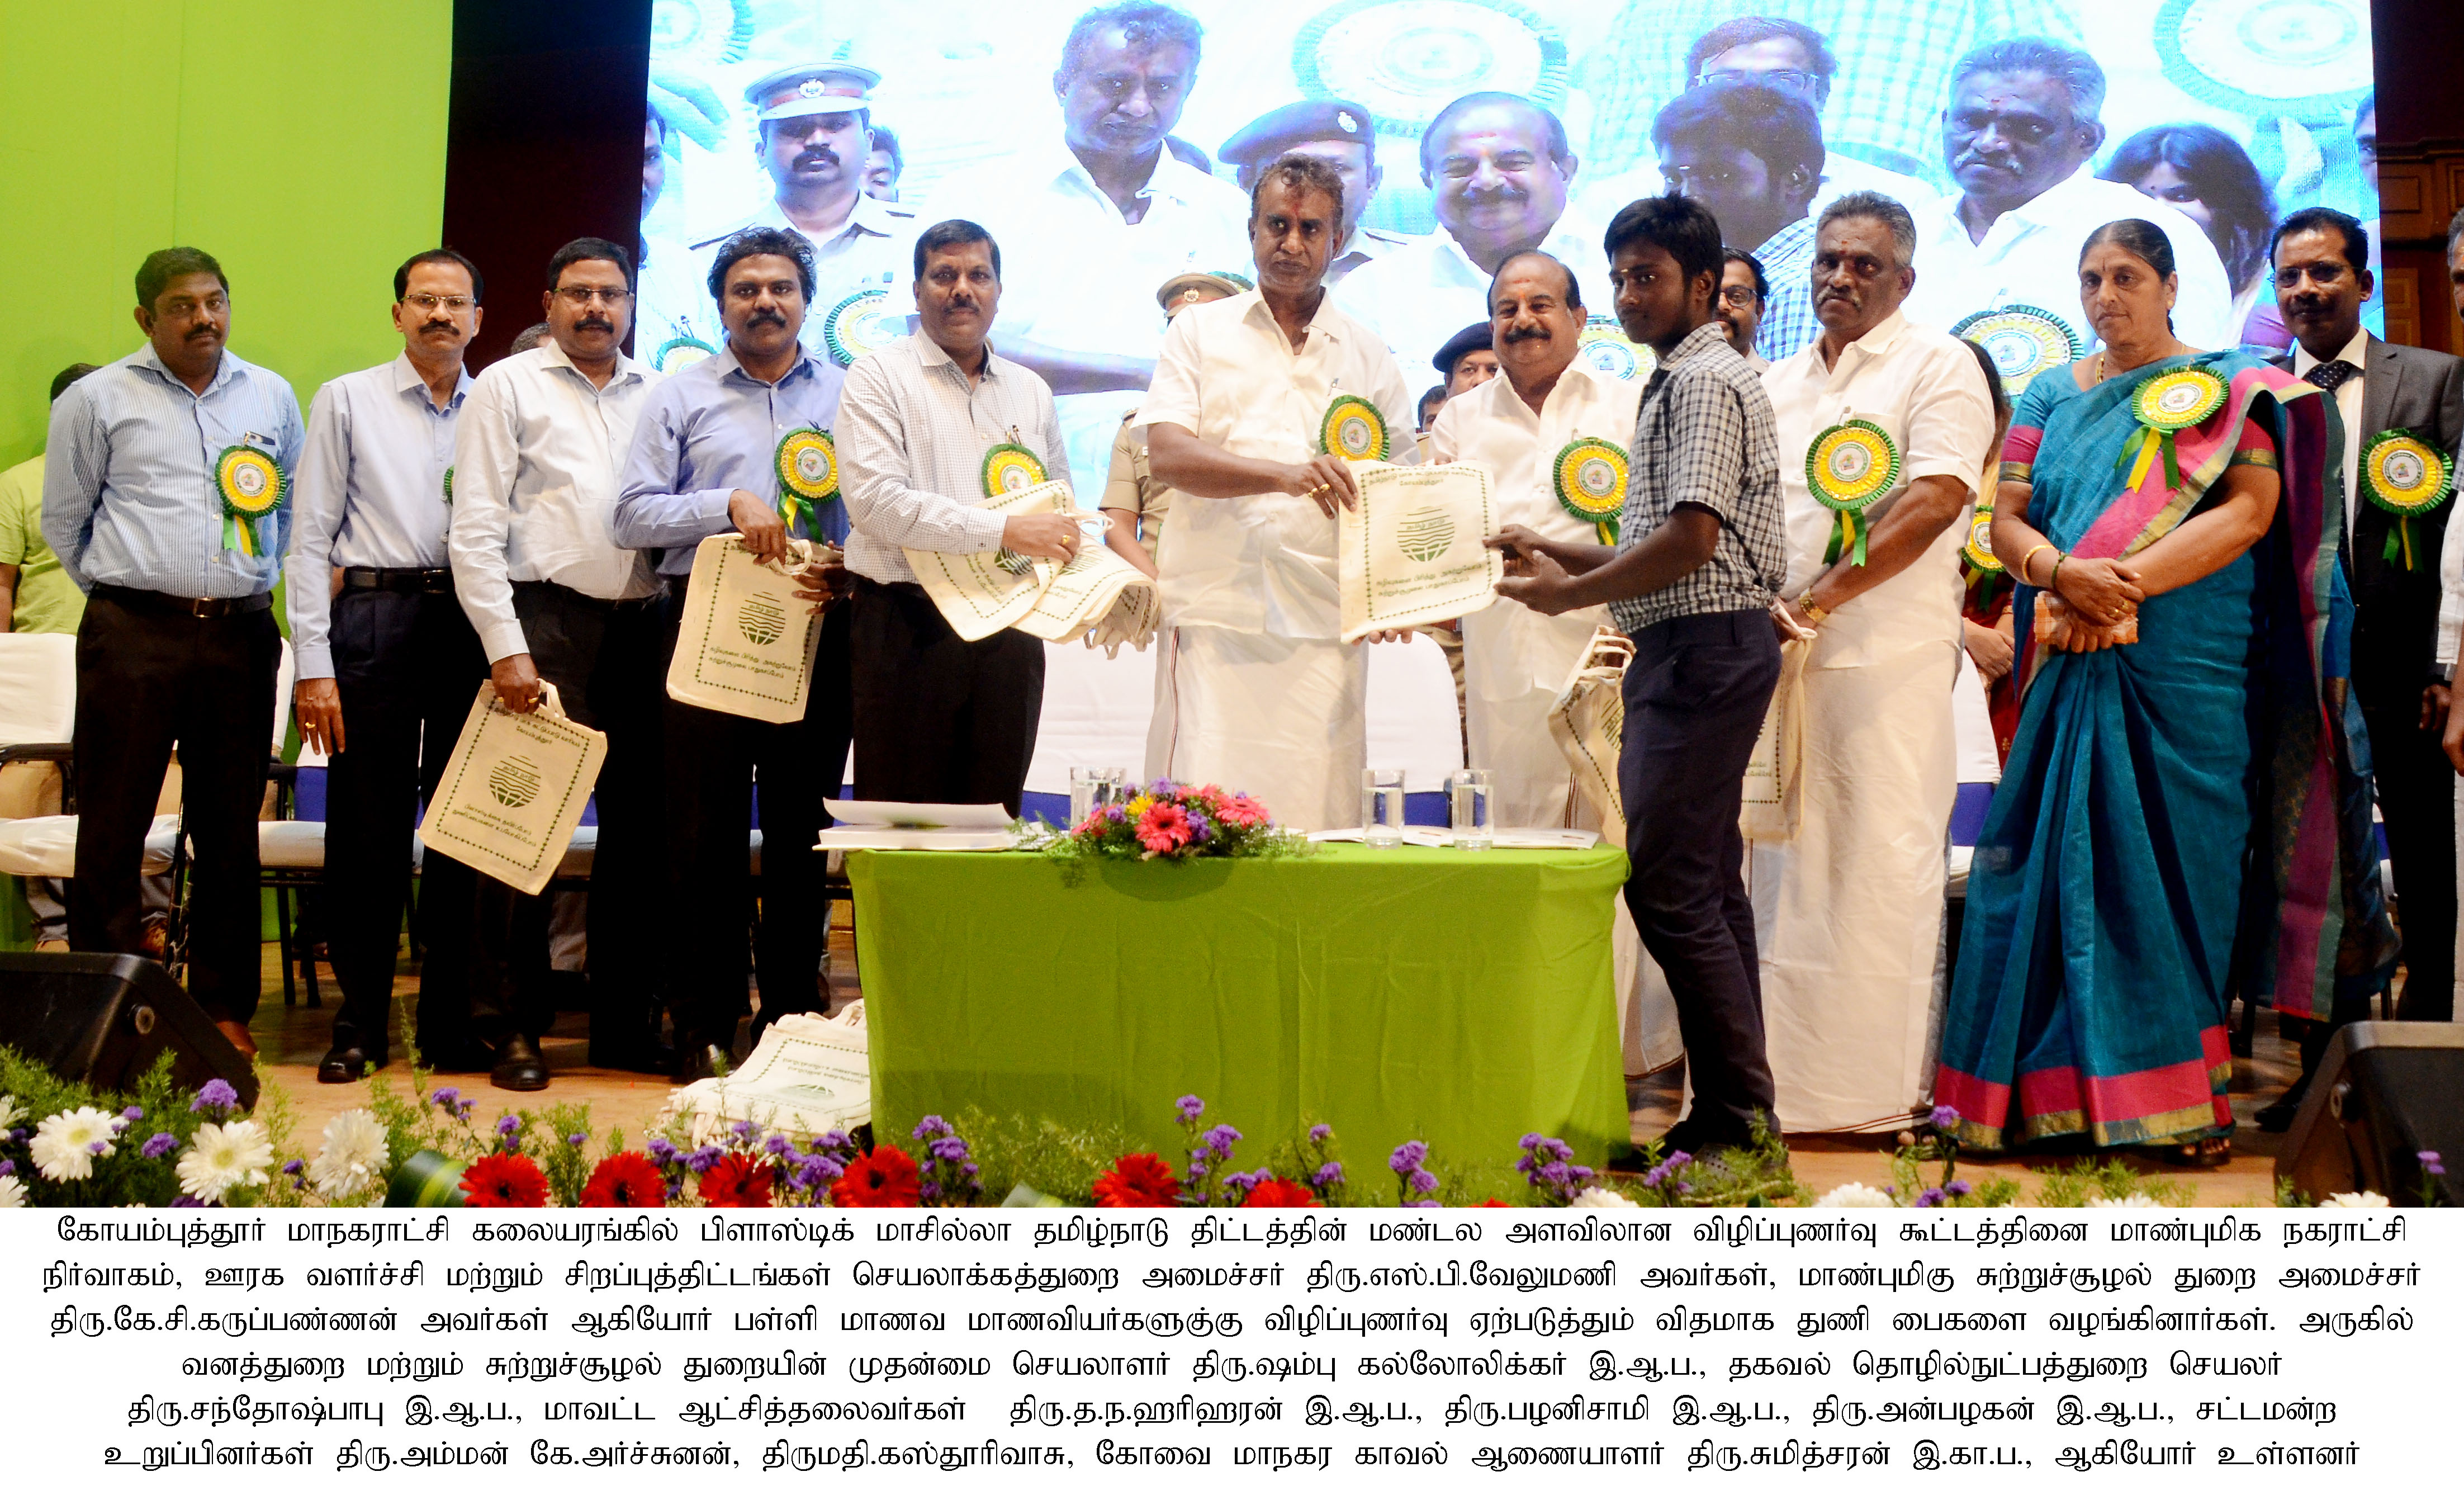 Plastic Pollution free Tamil Nadu Project Rally and Regional Awareness Meeting inagurated